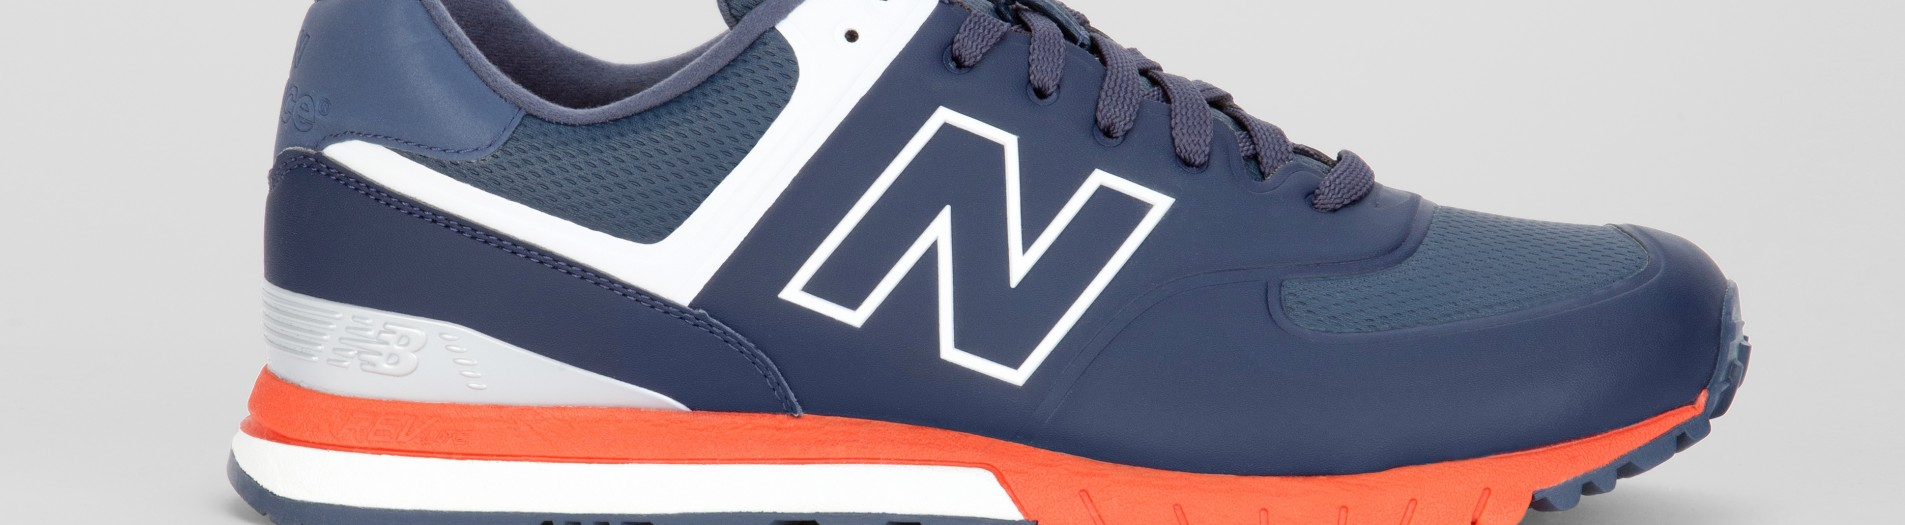 Product Shots -- Sports Sneakers